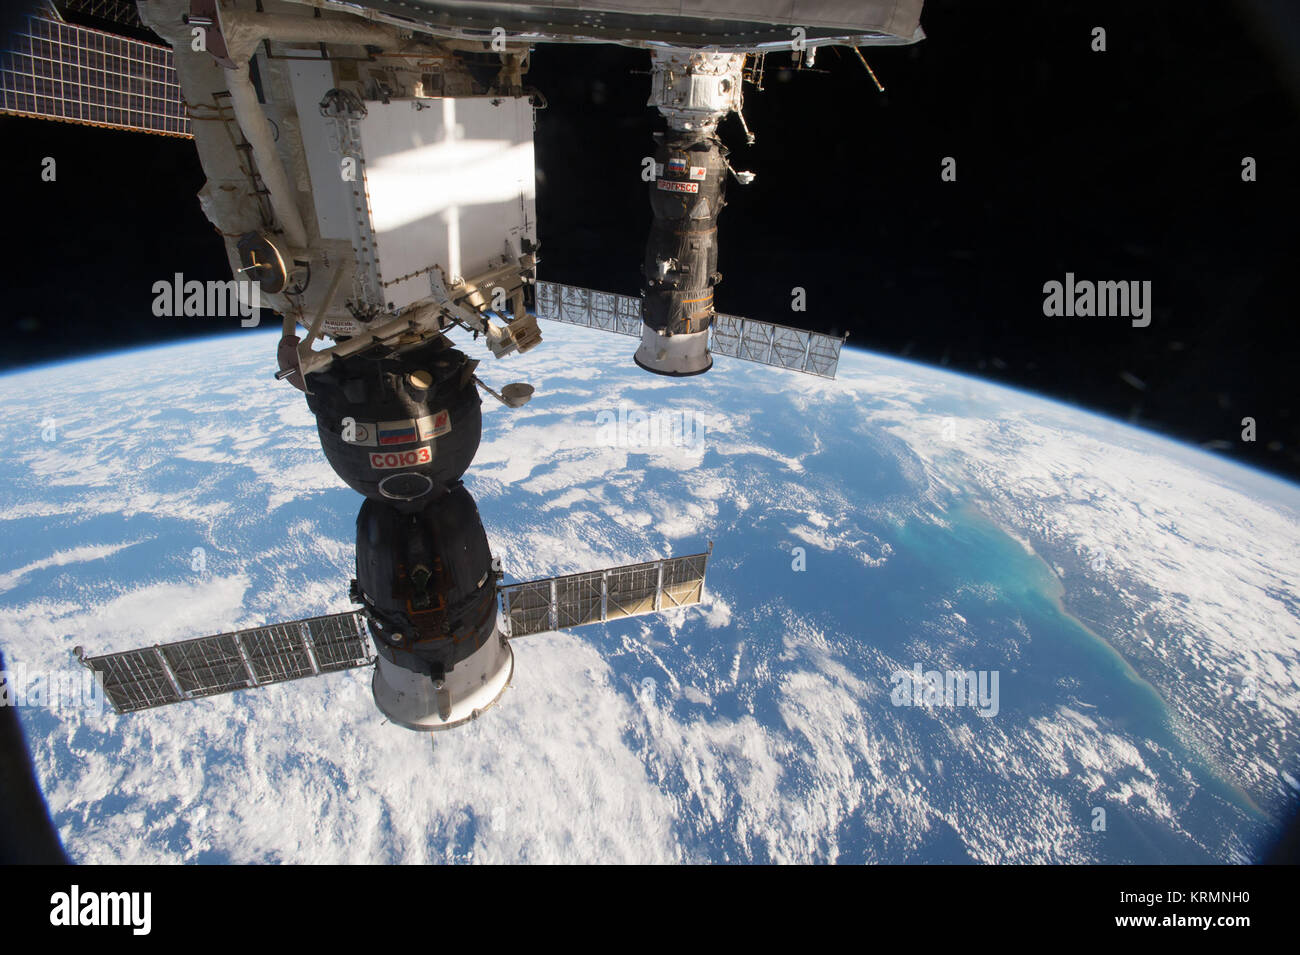 ISS-48 Soyuz MS-01 and Progress MS-03 docked to ISS over Brazil - Stock Image